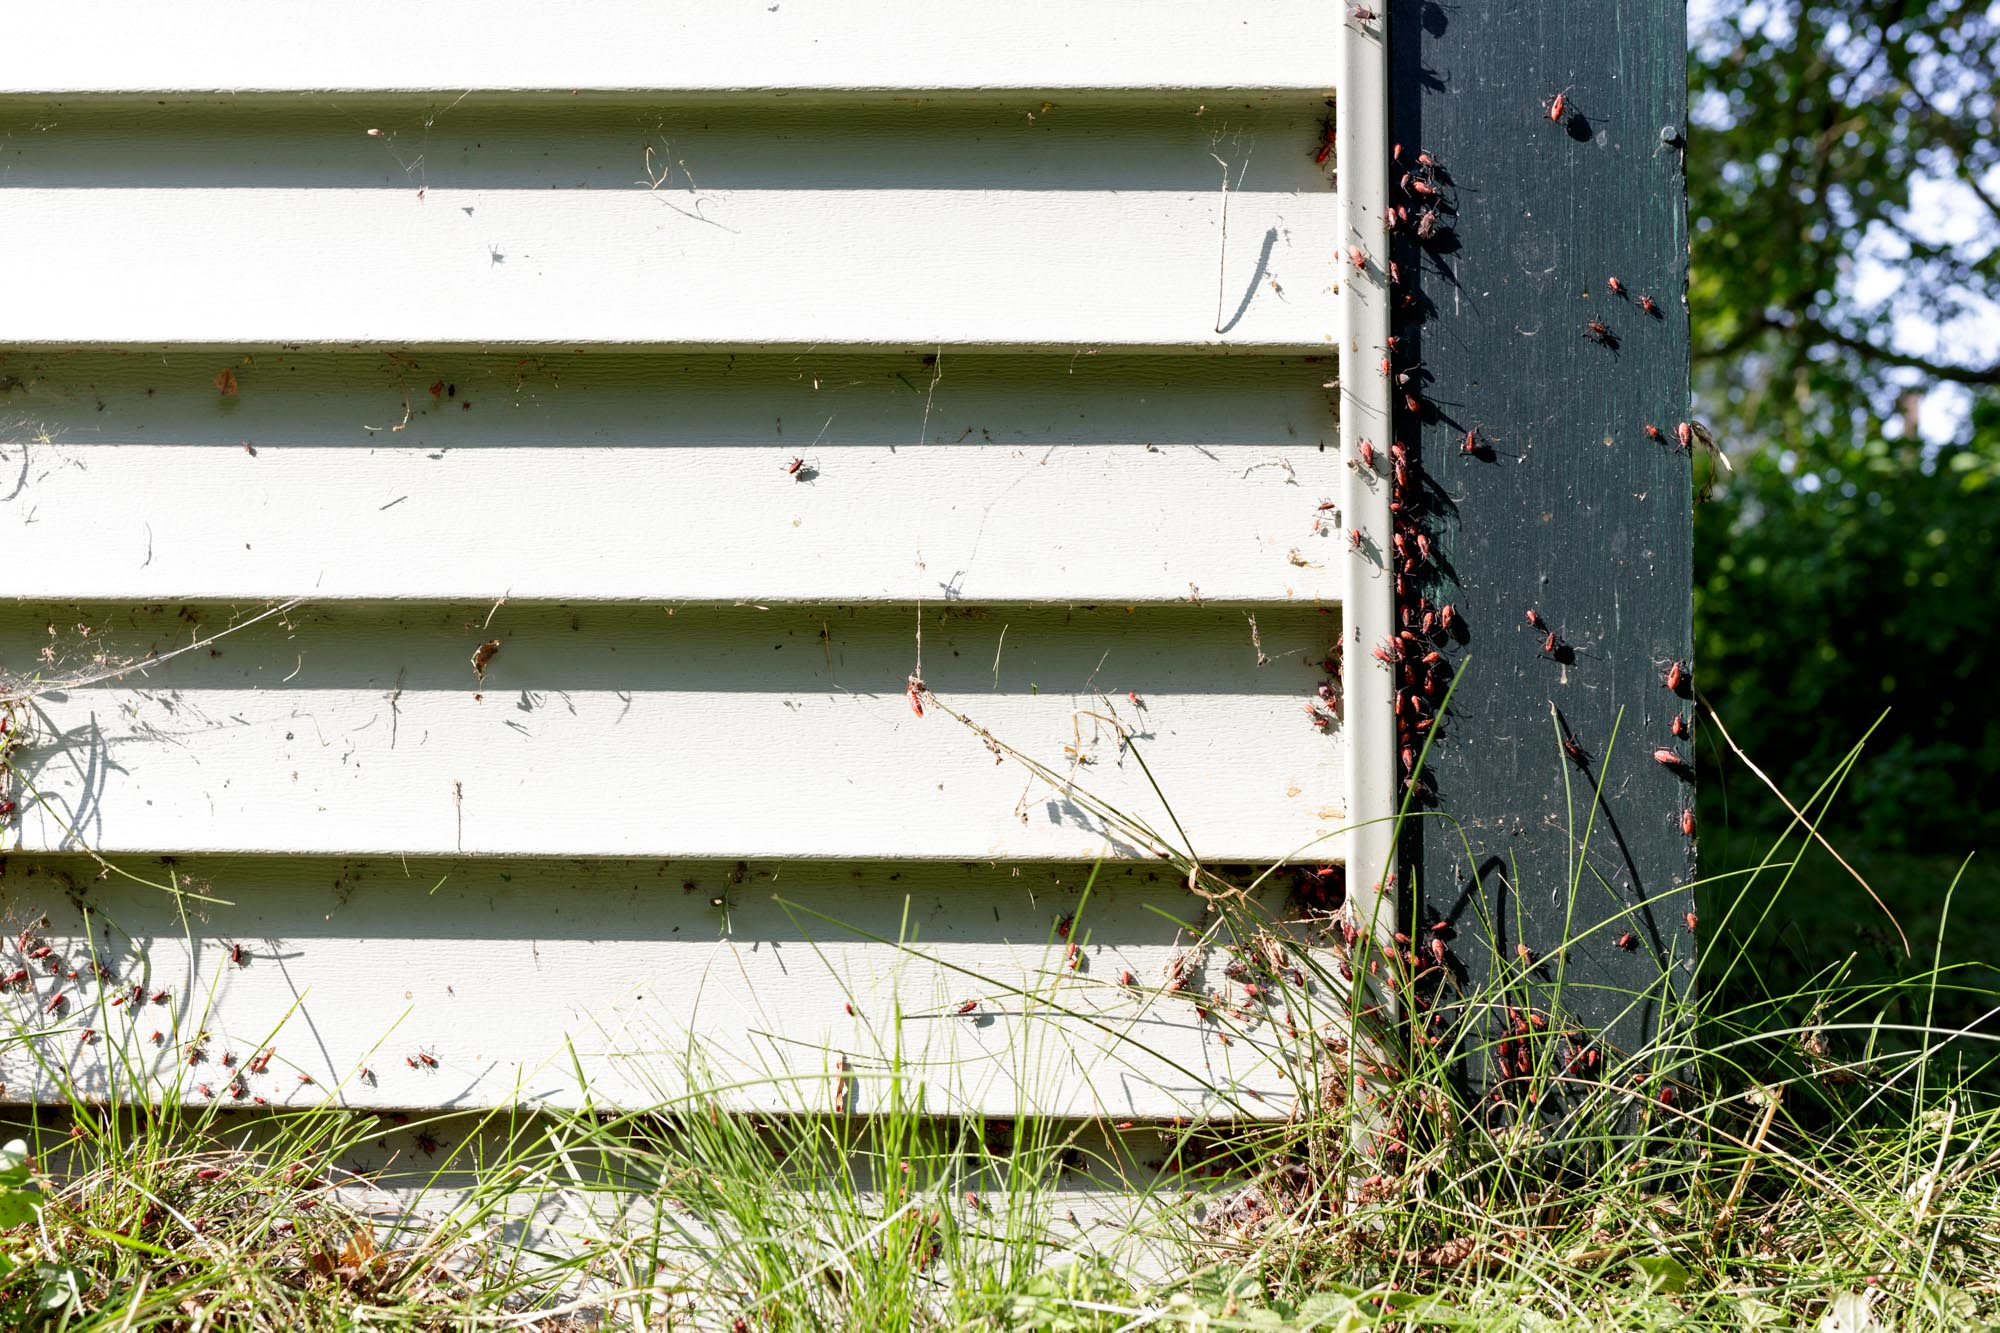 Bugs, Grass, and Siding